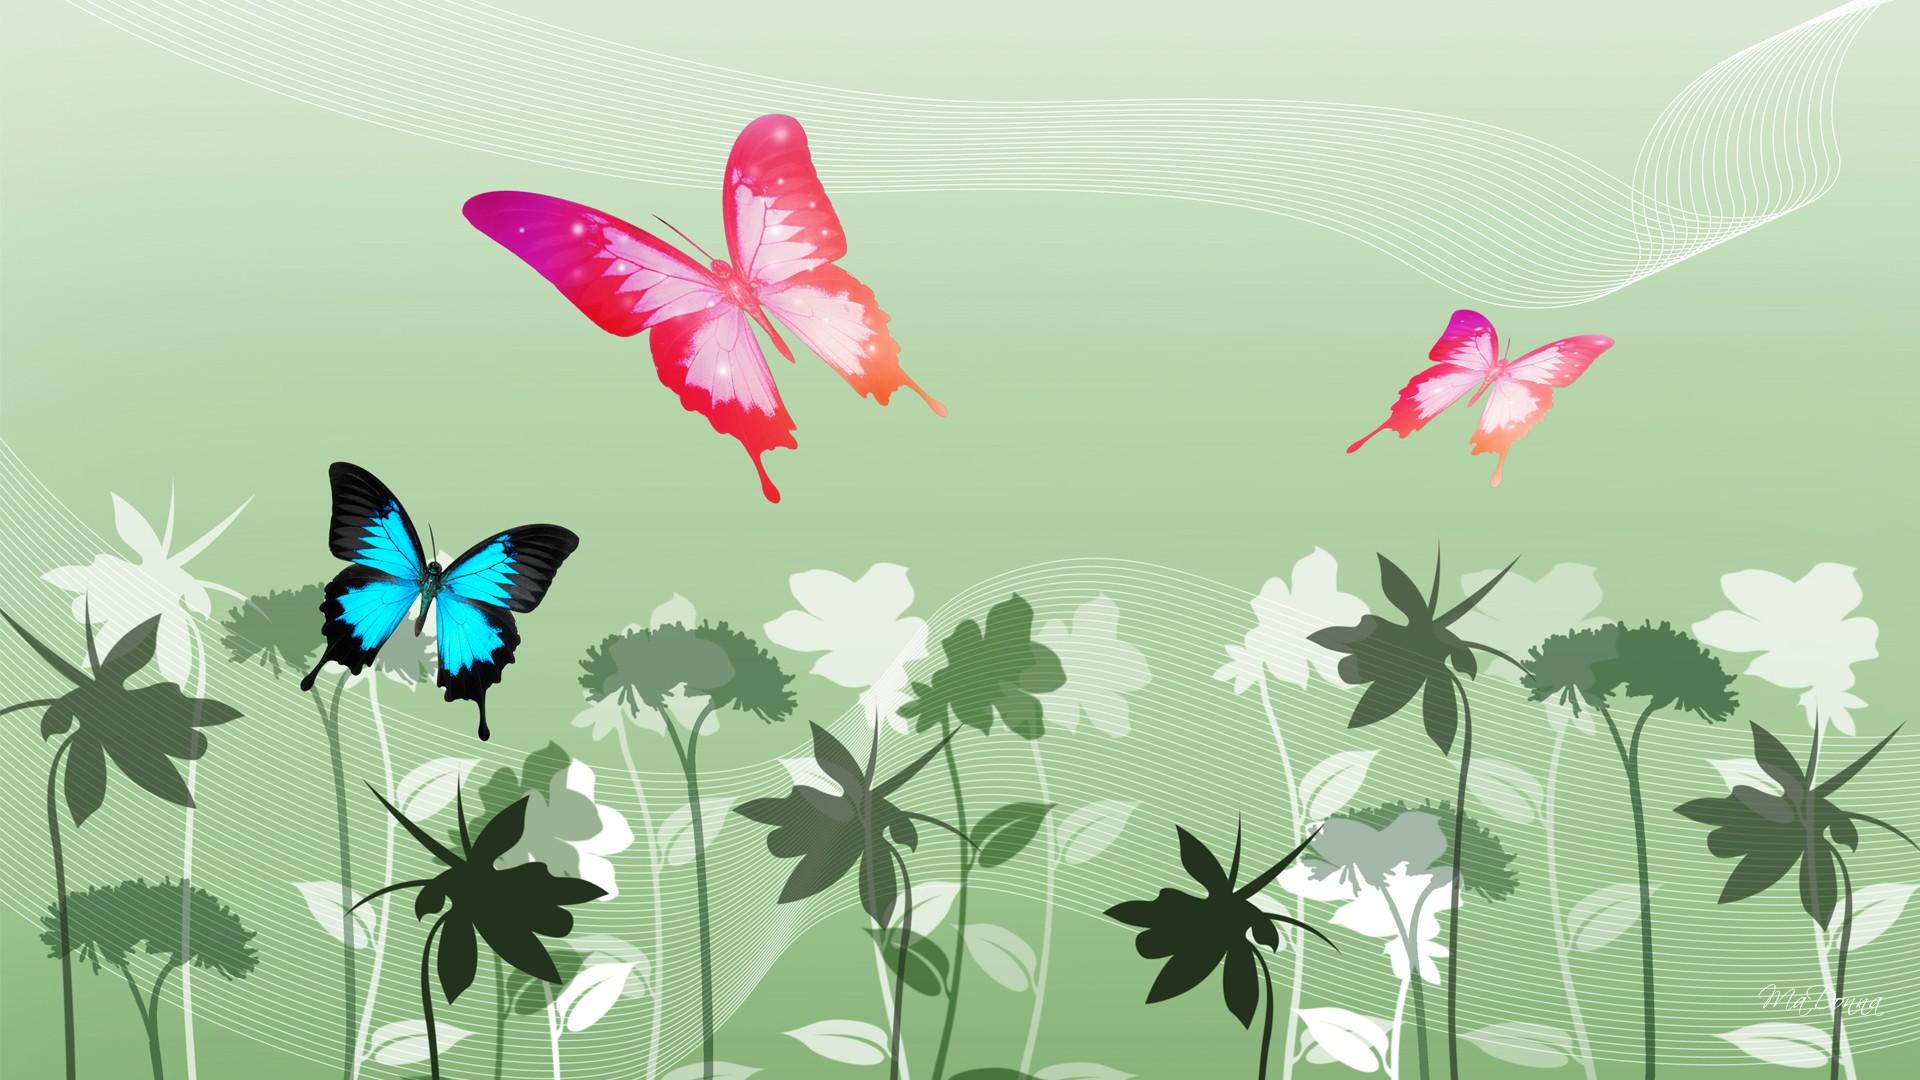 Colorful Butterfly Wallpapers 27 Background Wallpaper   Hivewallpaper 1920x1080